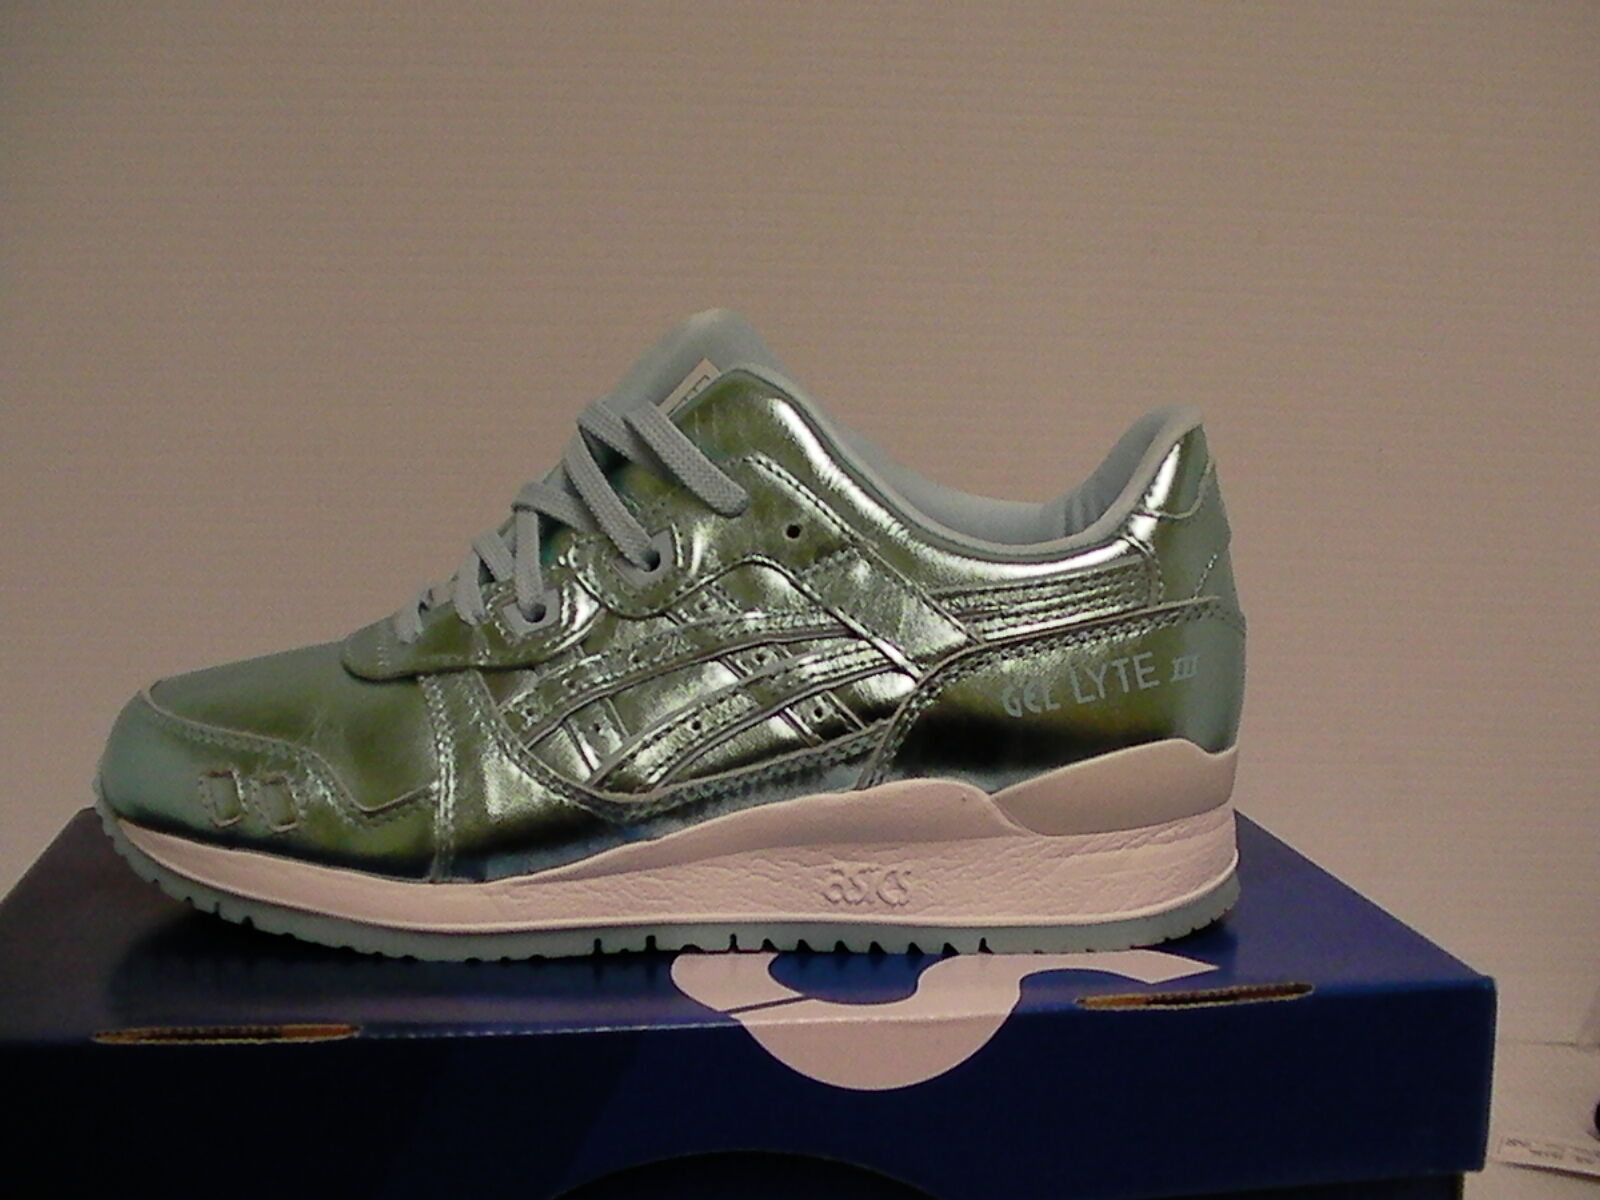 femmes 's asics chaussures gel lyte iii ice Bleu Taille 8 us new with box